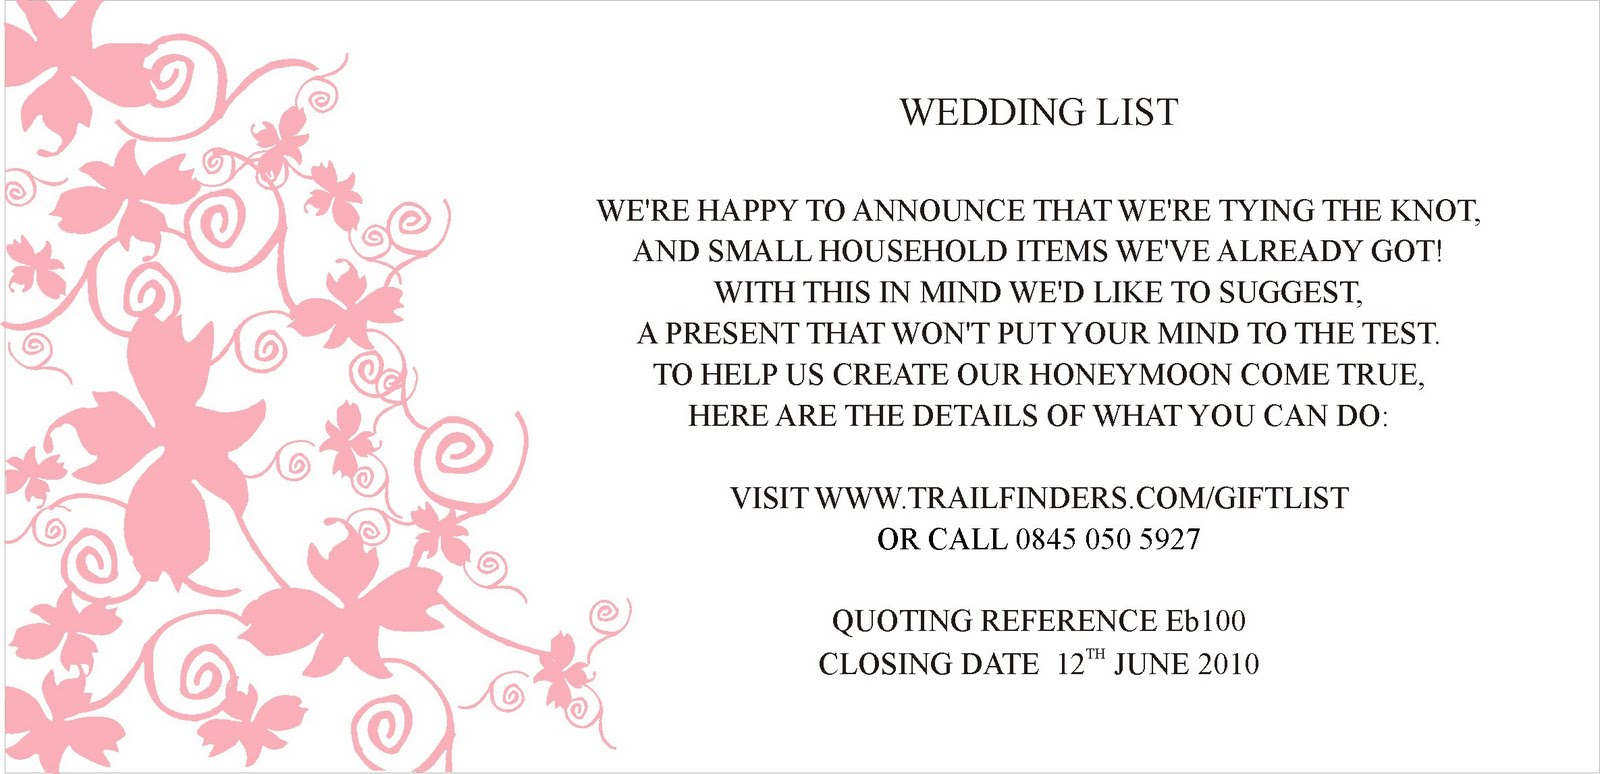 Wedding Gift Message For Honeymoon : ... for weddings, invitations and stationery: Wedding Gift Card